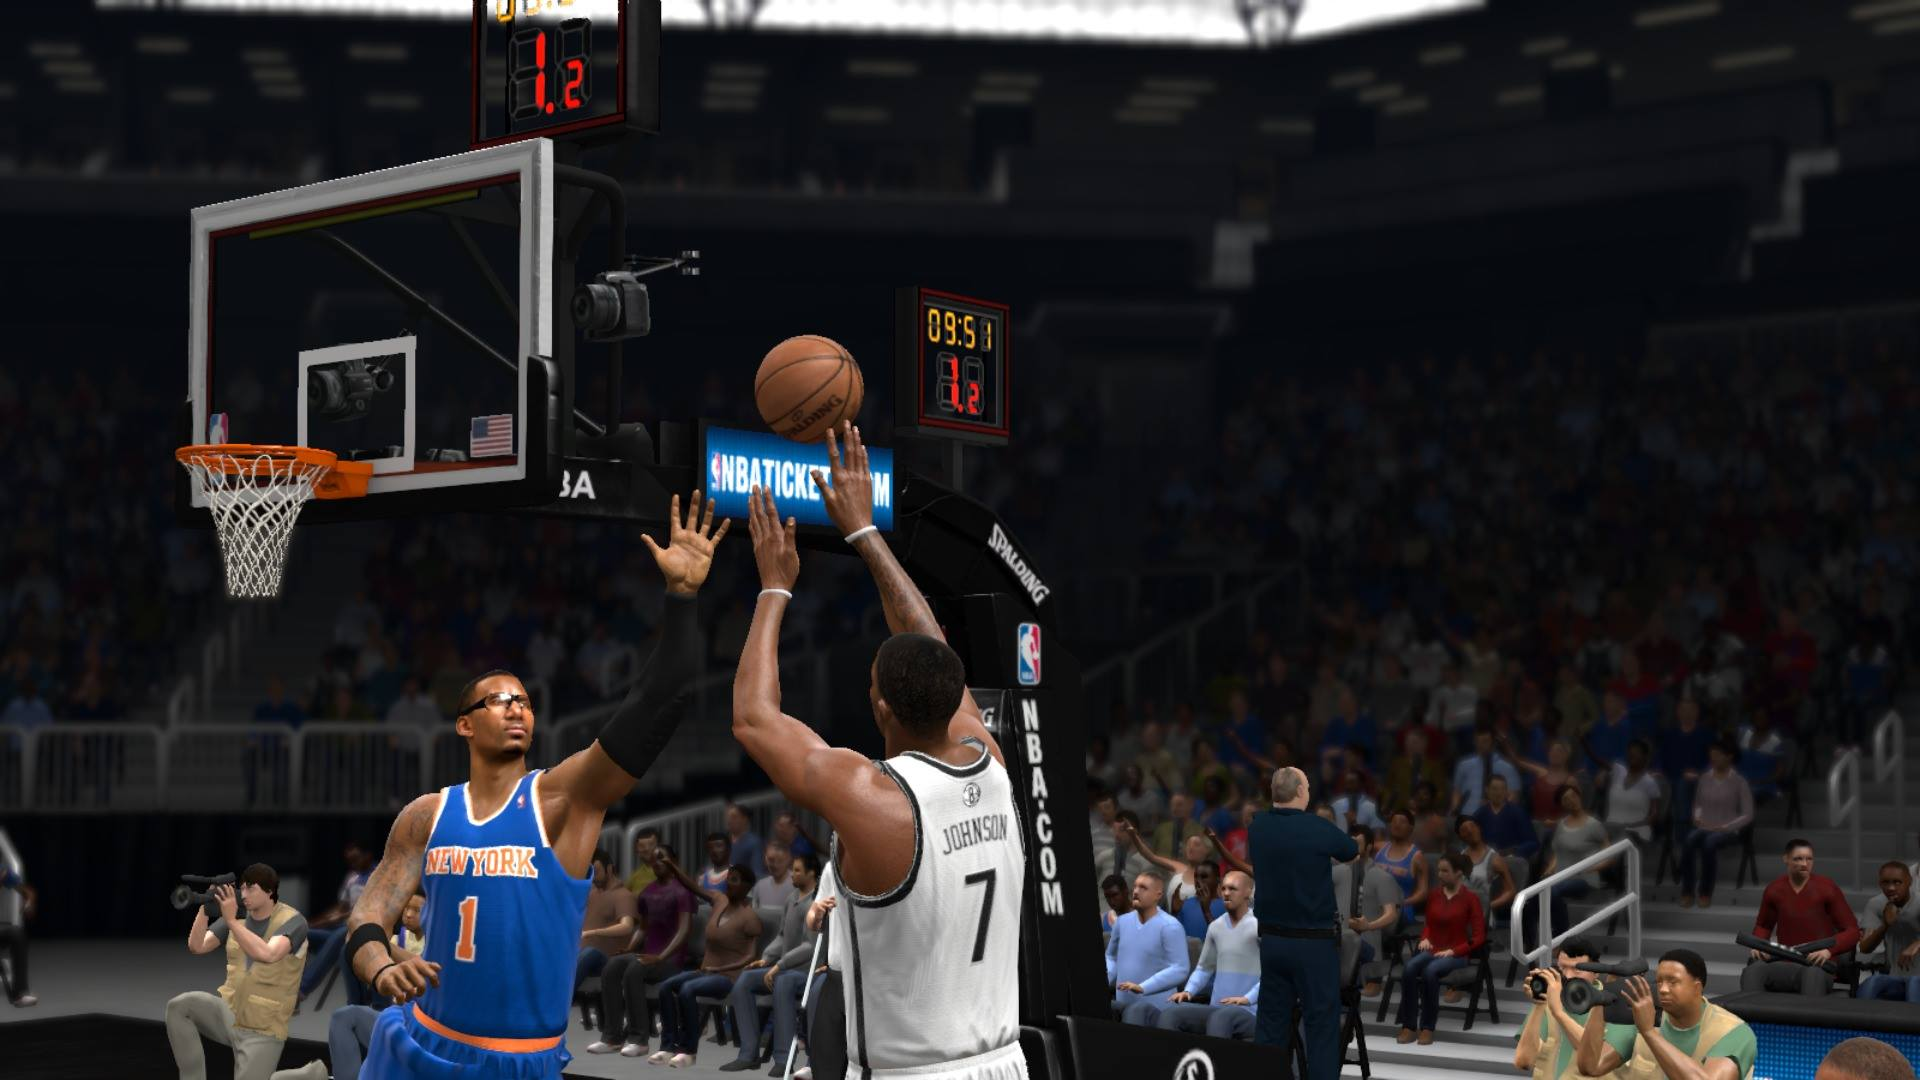 Joe Johnson fires up a shot against the Knicks in NBA Live 14